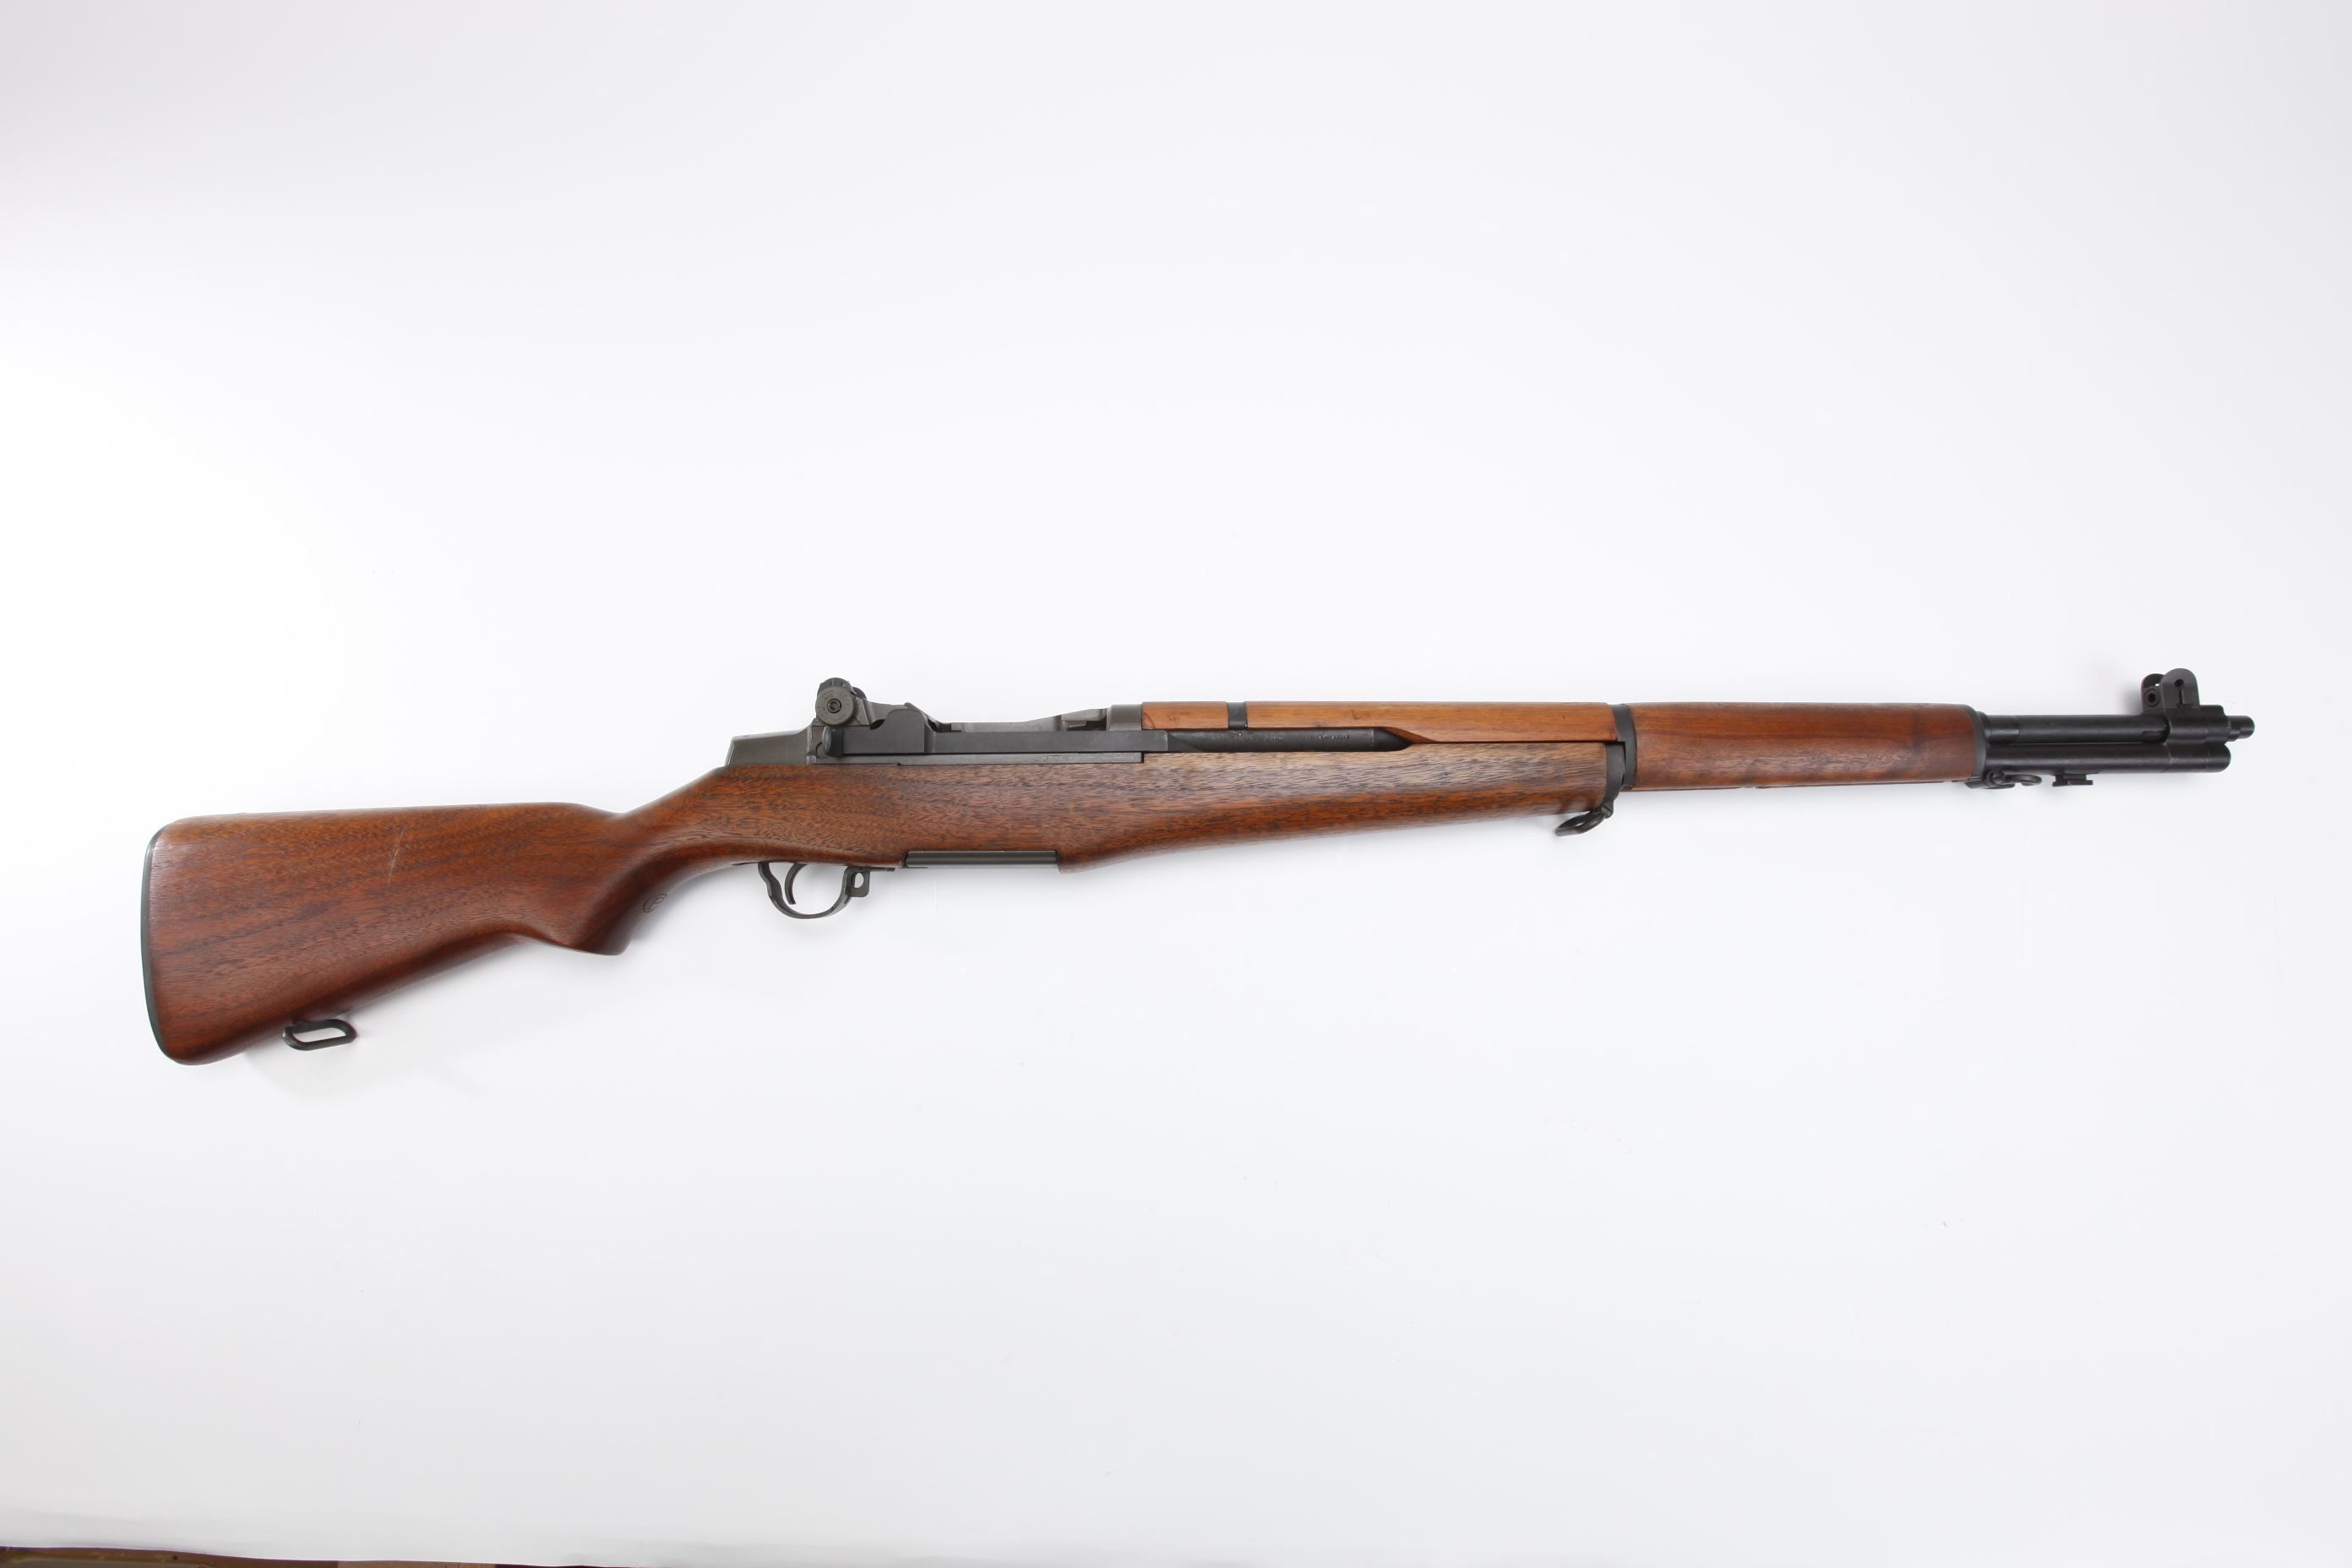 U.S. Springfield M1 Garand National Match Semi Automatic Rifle